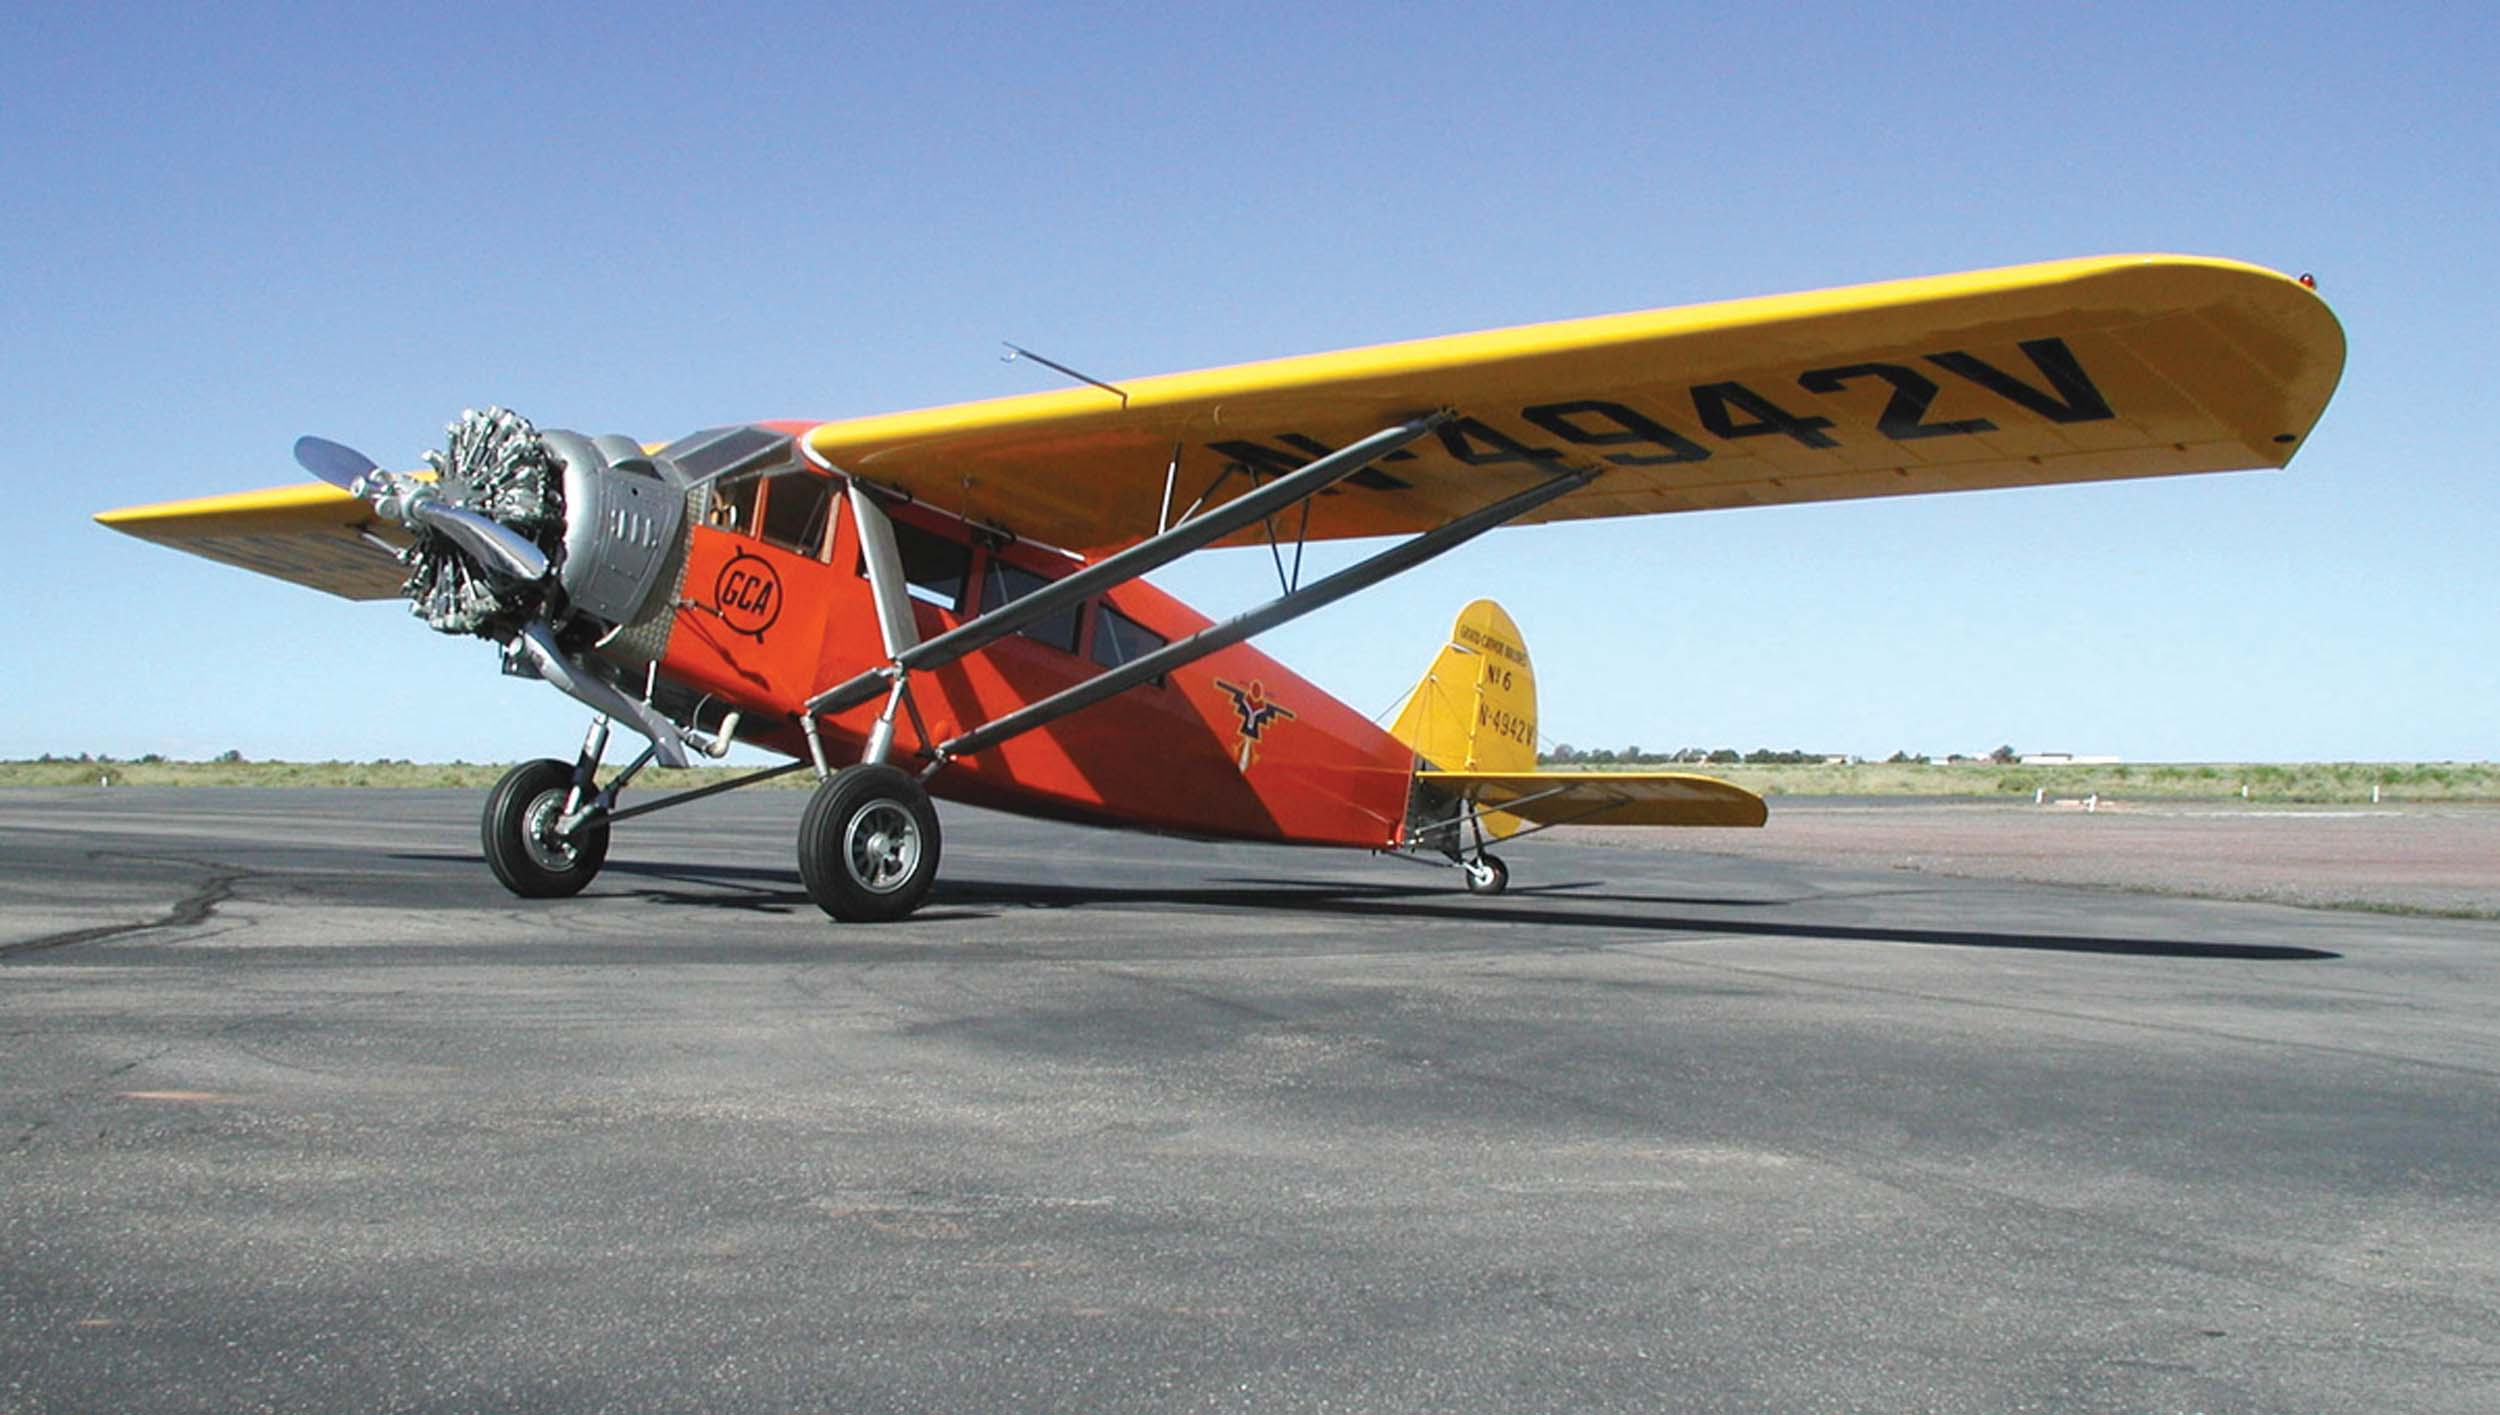 Valle Airport Schedules First GA Fly-In and Chili Cook-off for October 22